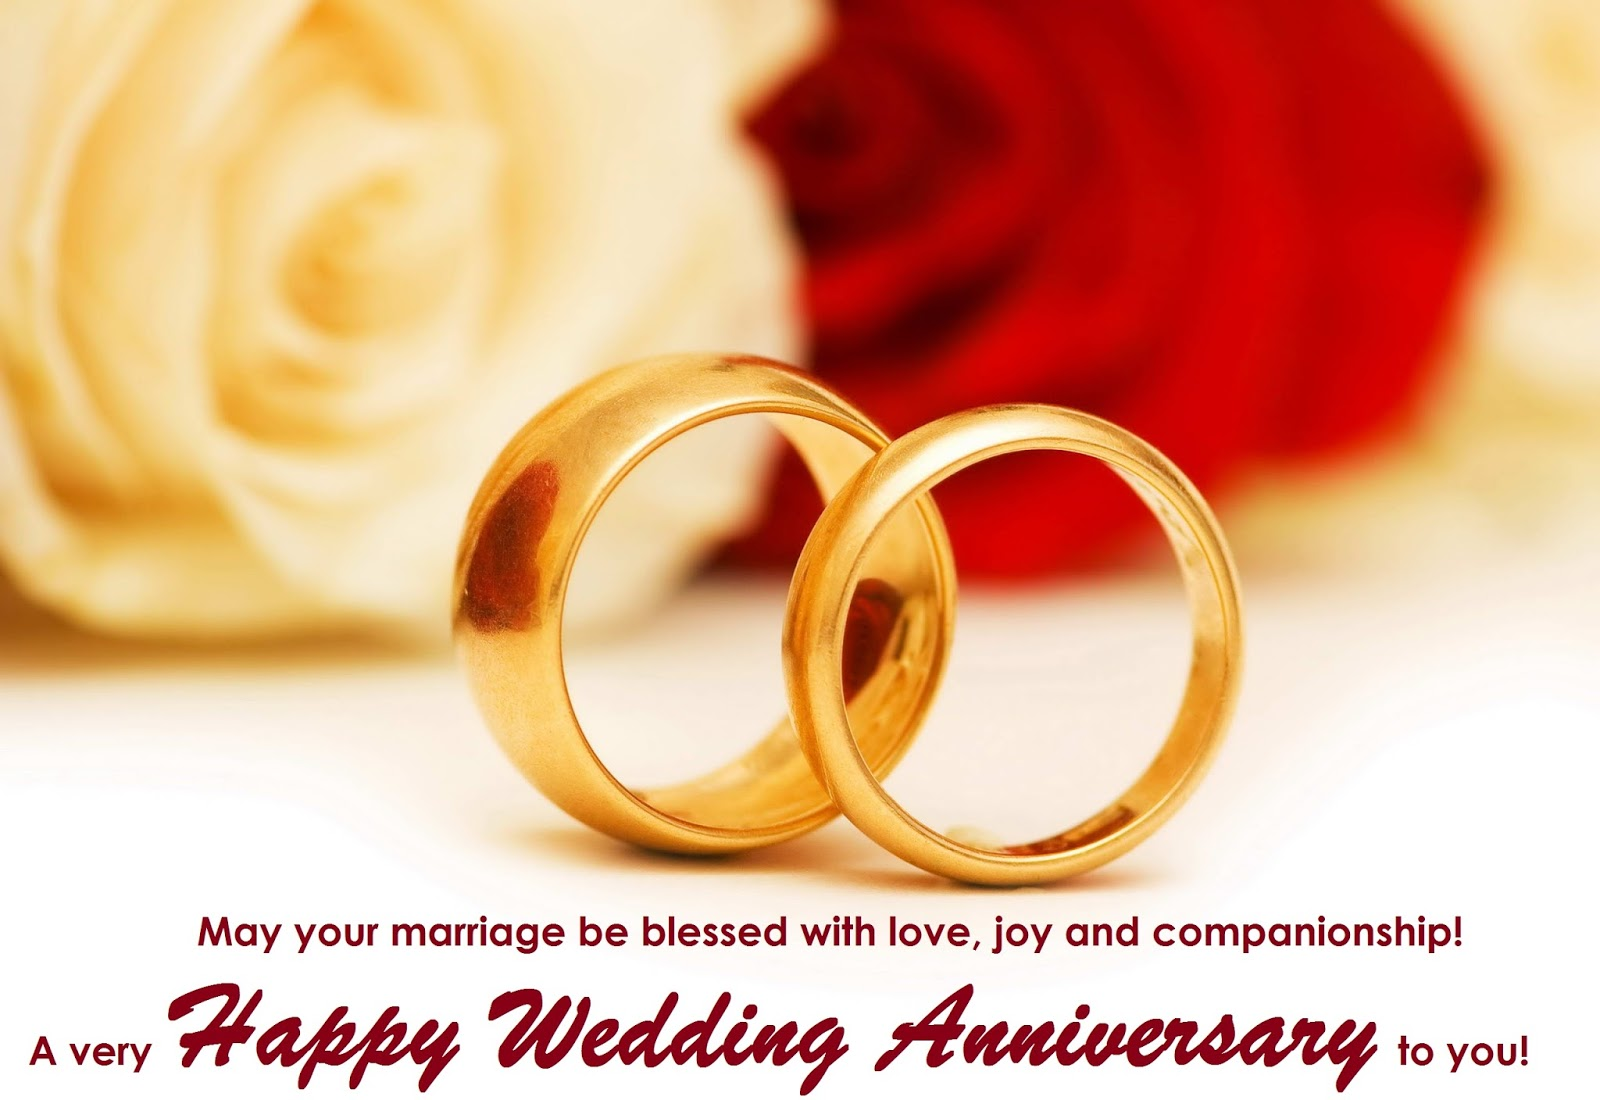 Wishing For Many More Wishes Happy Wedding Anniversary Pictures